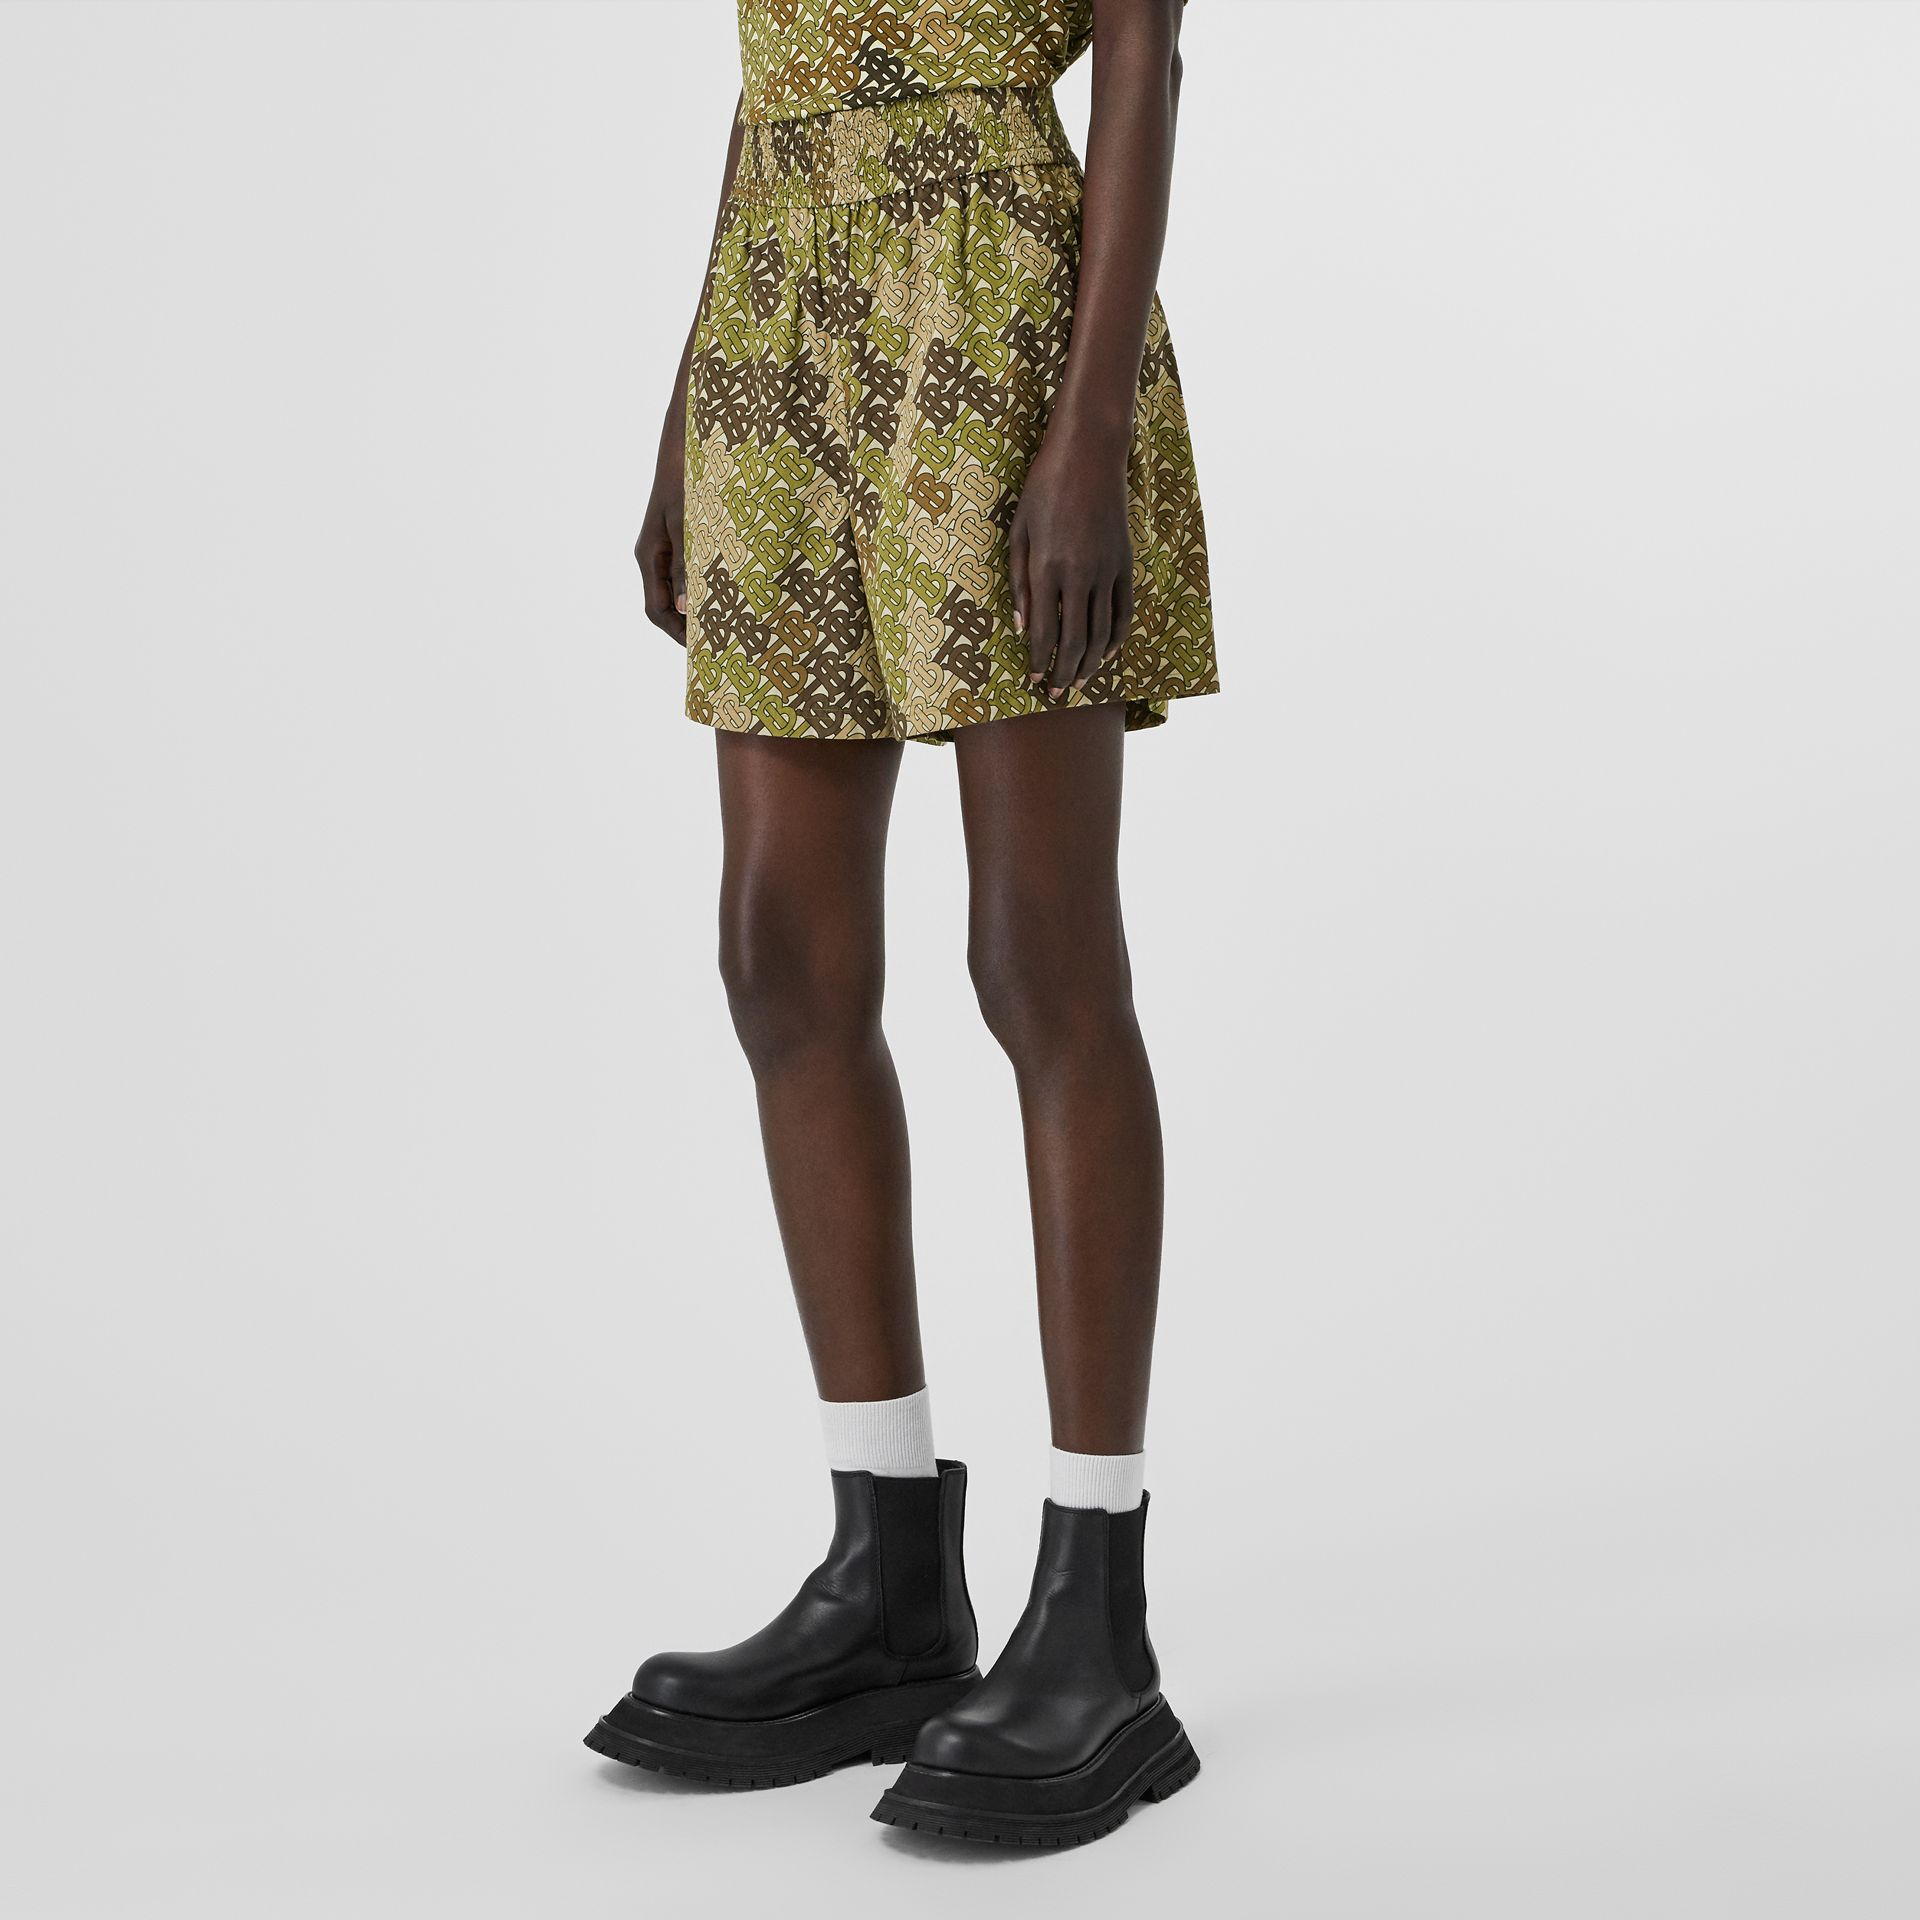 Monogram Print Cotton Poplin Shorts in Khaki Green - Women | Burberry - gallery image 4